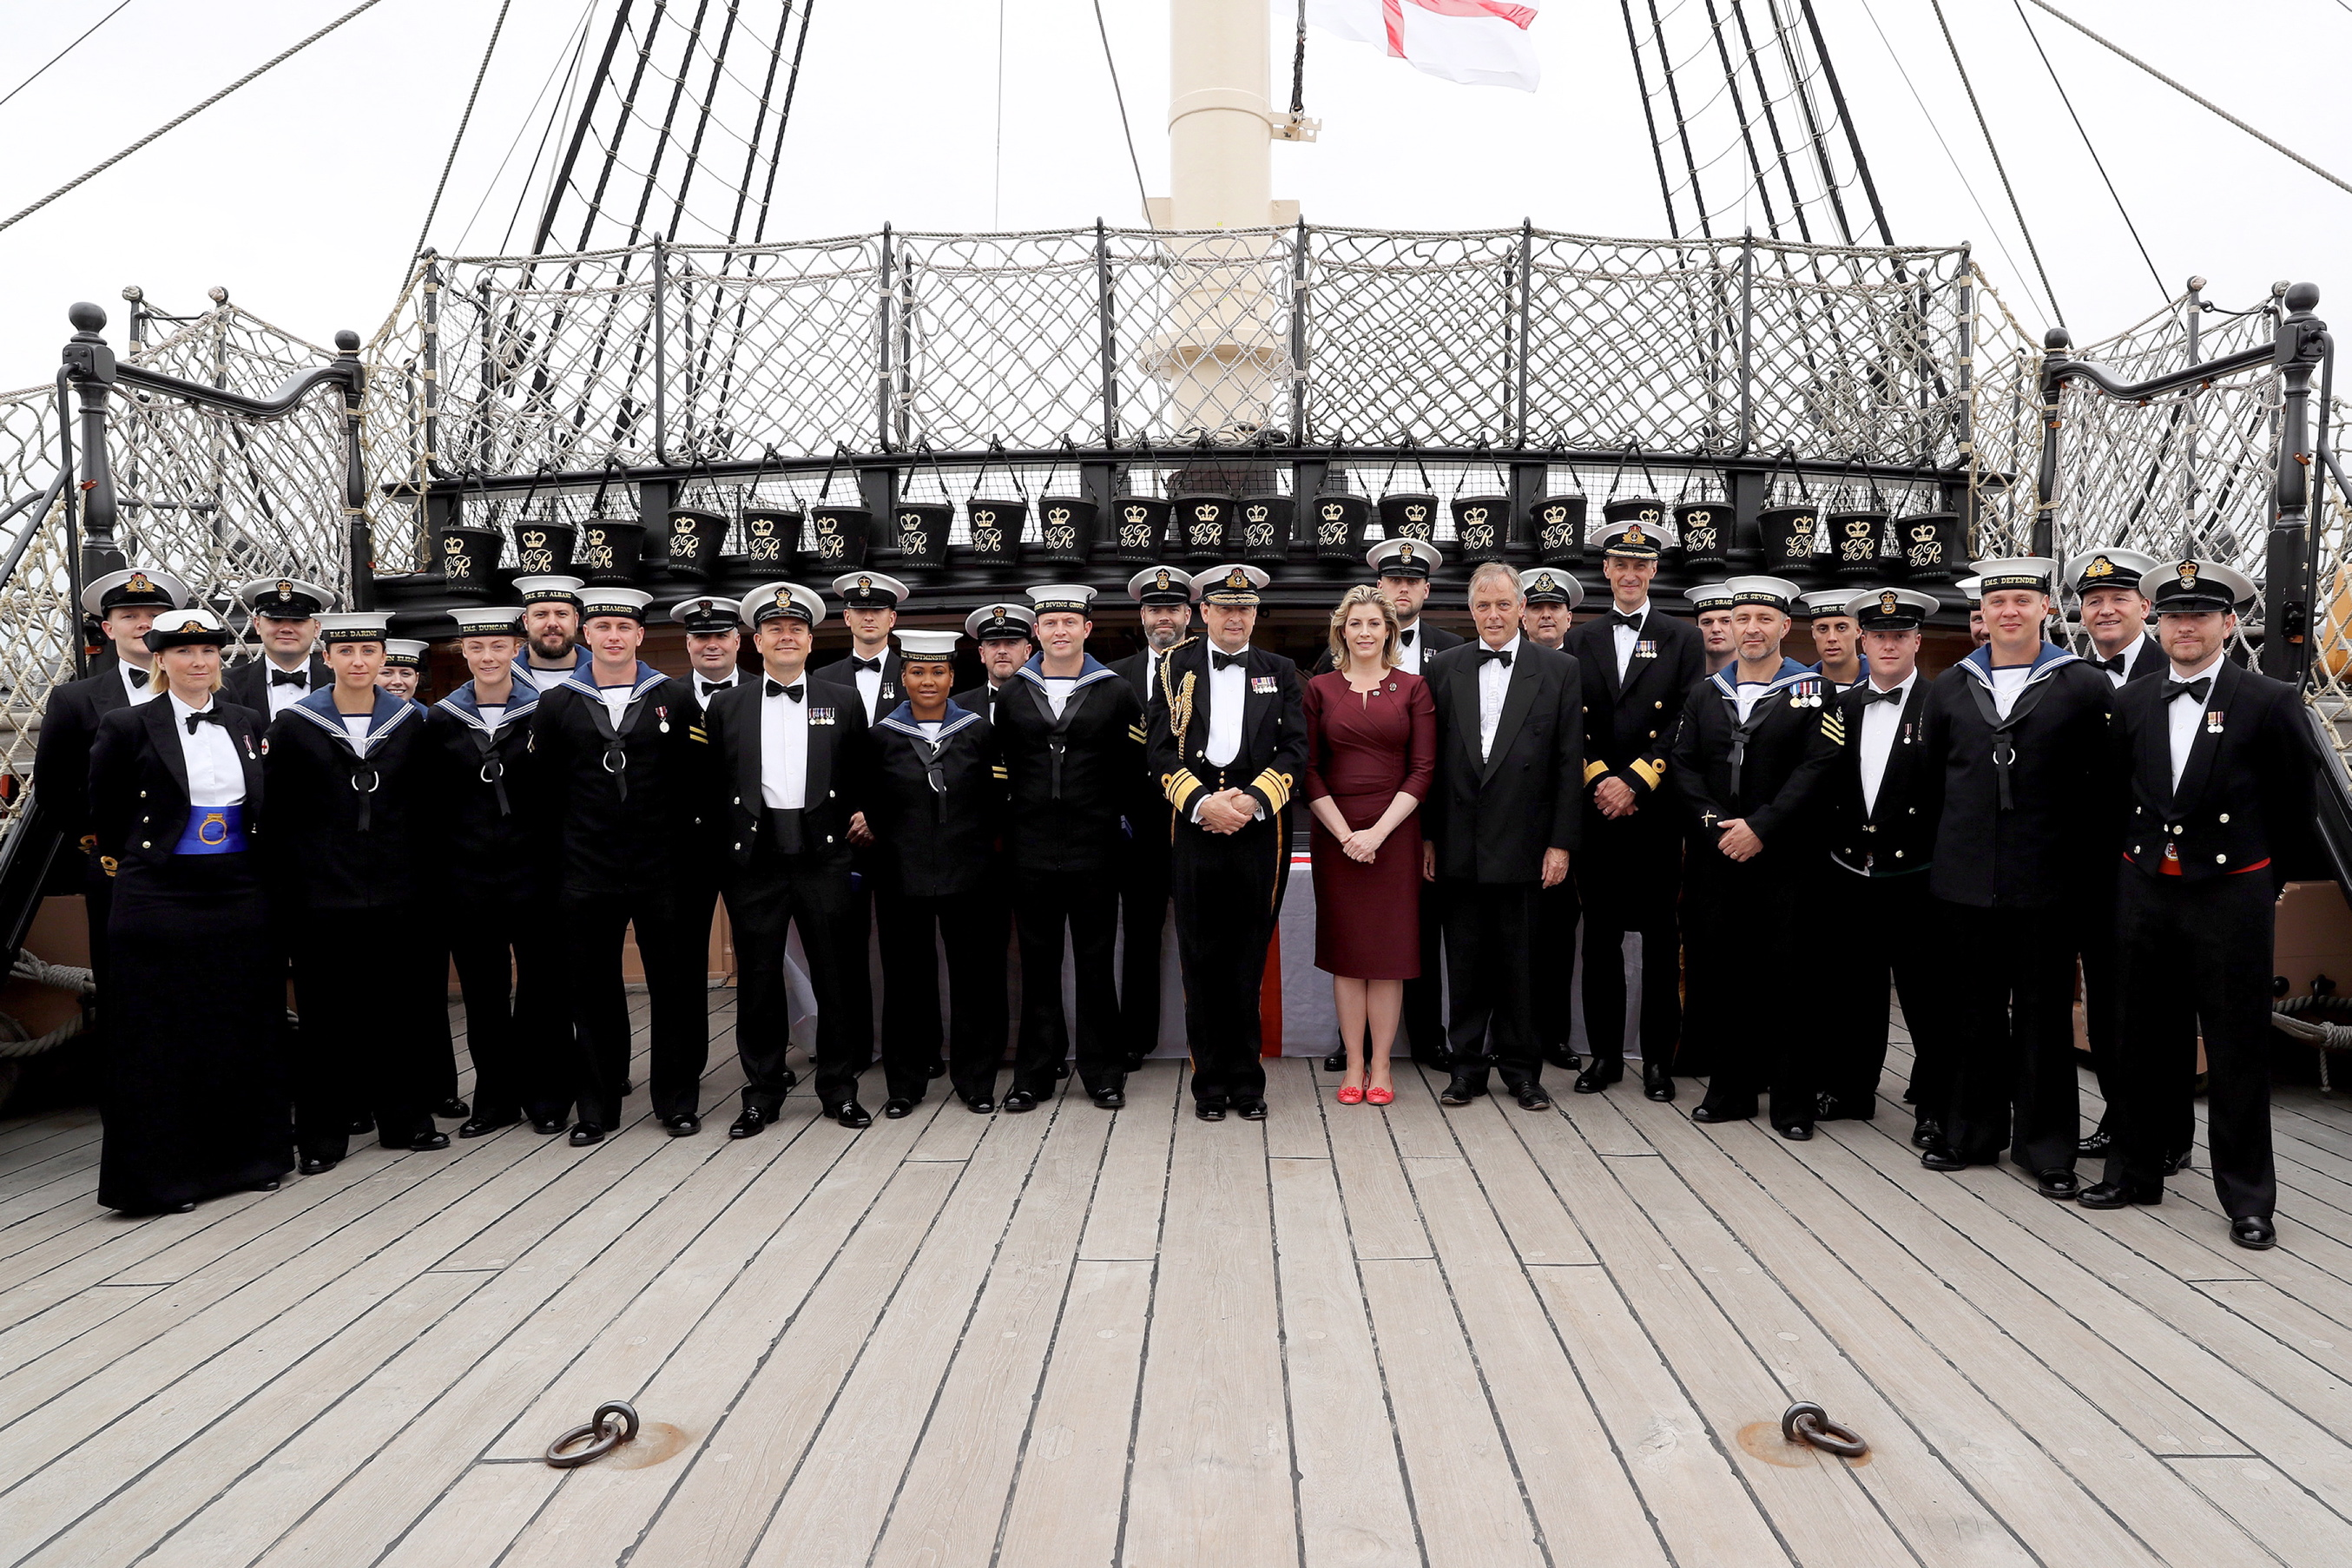 "Star sailors from the Royal Navy's Portsmouth flotilla have been rewarded for outstanding achievements by the Armed Forces Minister.  In her last day in office Penny Mordaunt presented 29 awards to personnel who have gone the extra mile for their ship or unit during the past 12 months. The ceremony on Friday (July 15) was held on board HMS Victory and was followed by a dinner at HMS Nelson.  Two recipients of the award are based on the 65,000-tonne giant aircraft carrier HMS Queen Elizabeth, currently in build at Rosyth. Chief Petty Officer Graeme Duncan was recognised for his efforts in working with industry to ensure that the ship's fresh water system, galley and laundry were ready for the ship's company to move on board.  Medical Assistant Louise Whalley was rewarded for her key role in introducing and managing the ship's first aid and medical training plans and for tailoring effective bespoke training for different departments. Commander Portsmouth Flotilla, Commodore Peter Sparkes said: ""In a challenging year when the Portsmouth Flotilla has scarcely been busier, it is really important that we recognise some of the extraordinary individual efforts of our Sailors, which contribute so powerfully to our collective successes.    Consent Held at FRPU(E)"